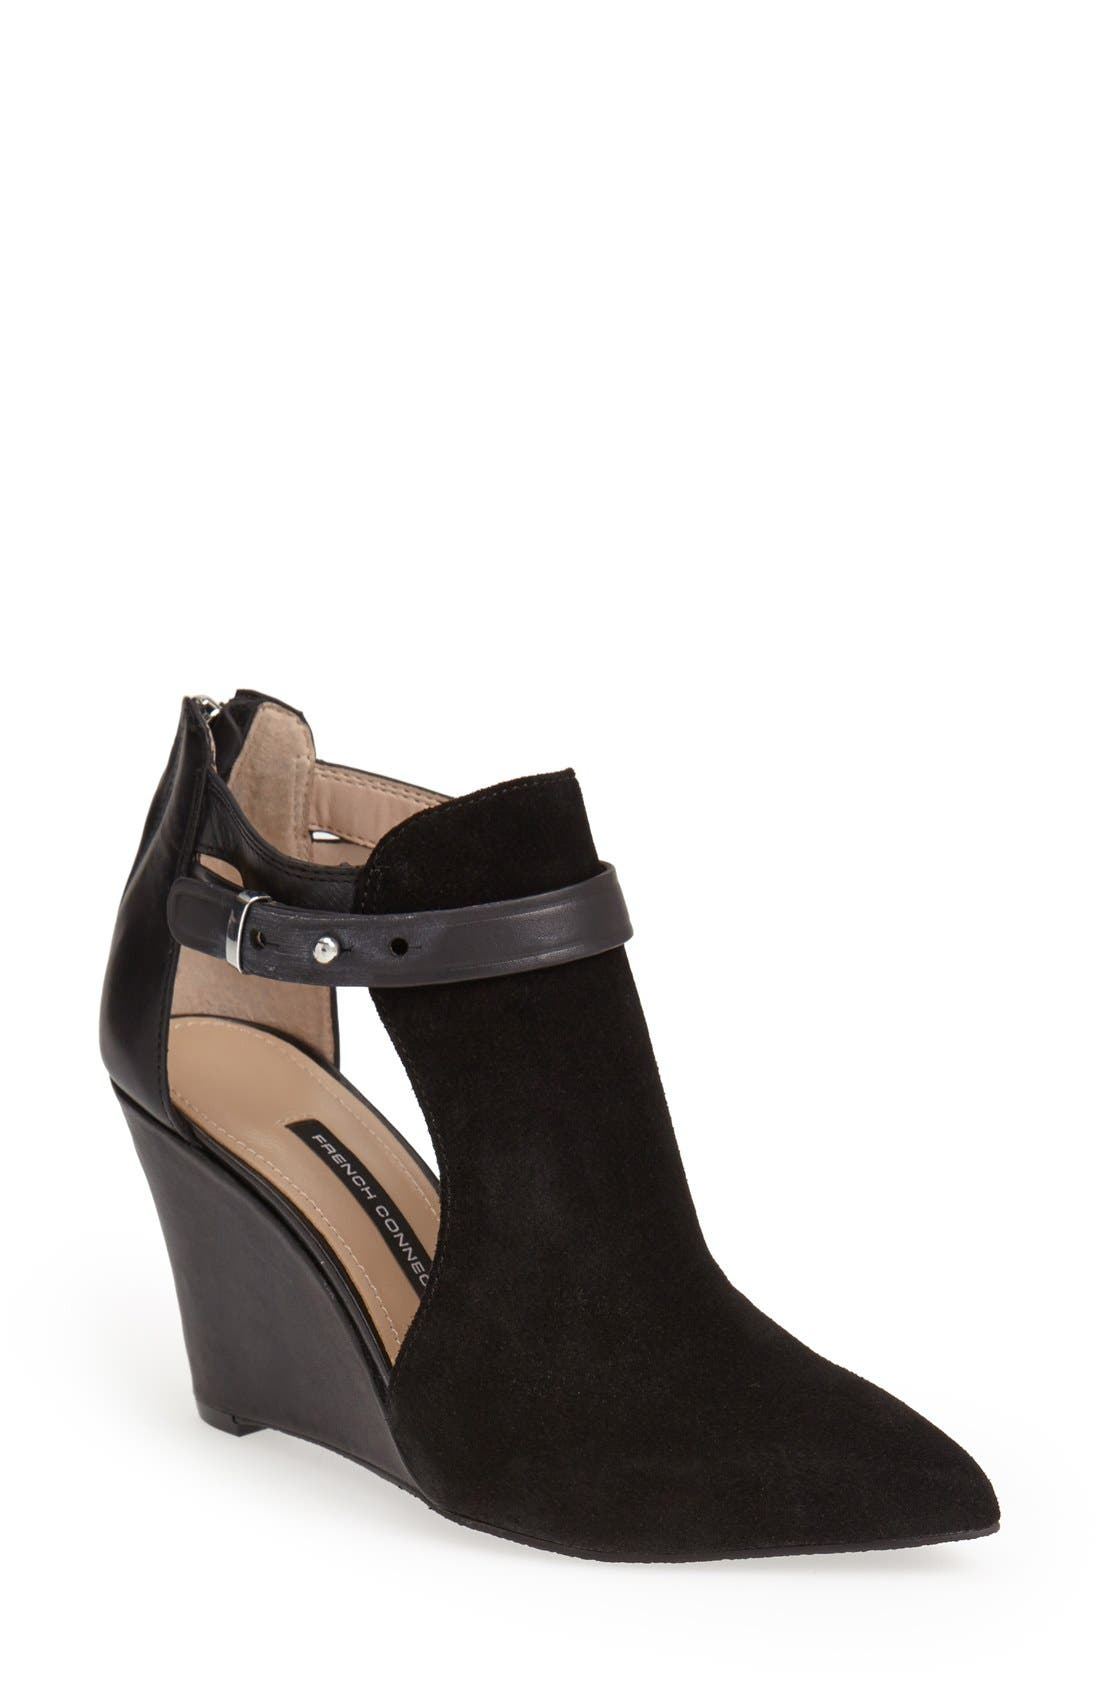 Alternate Image 1 Selected - French Connection 'Blyss' Wedge Boot (Women)